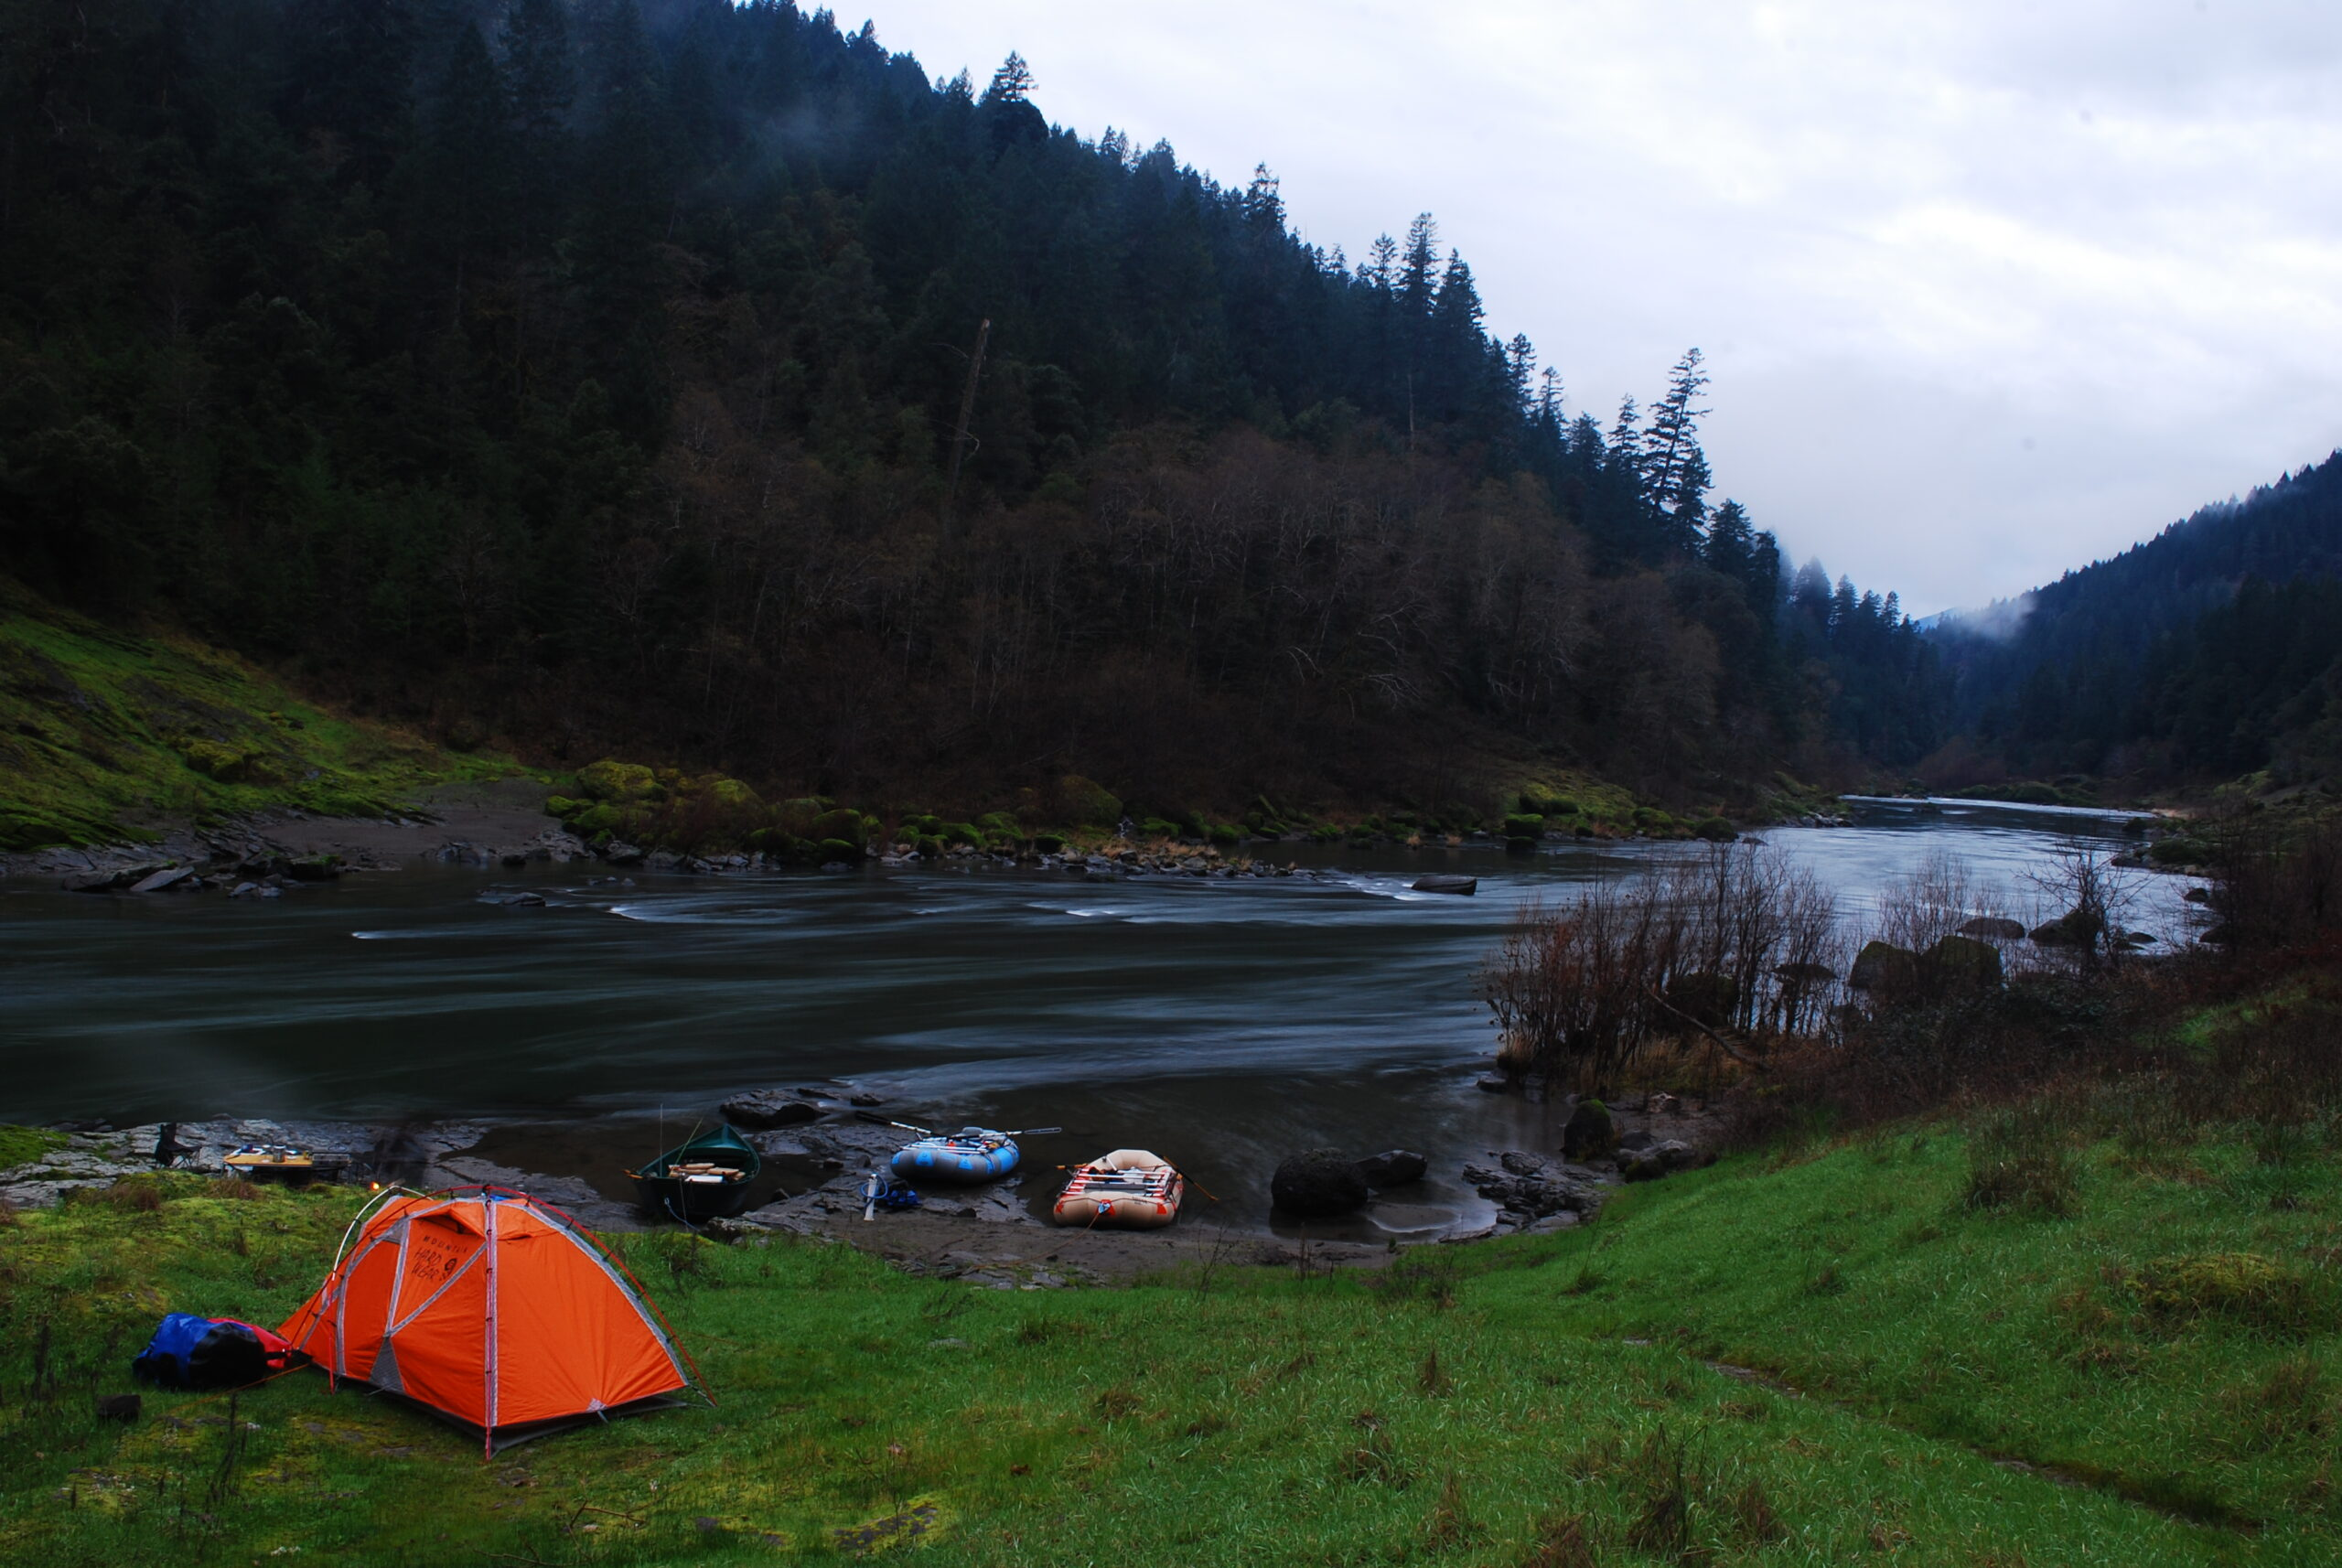 Camping at Upper Tacoma on the Wild & Scenic Rogue River